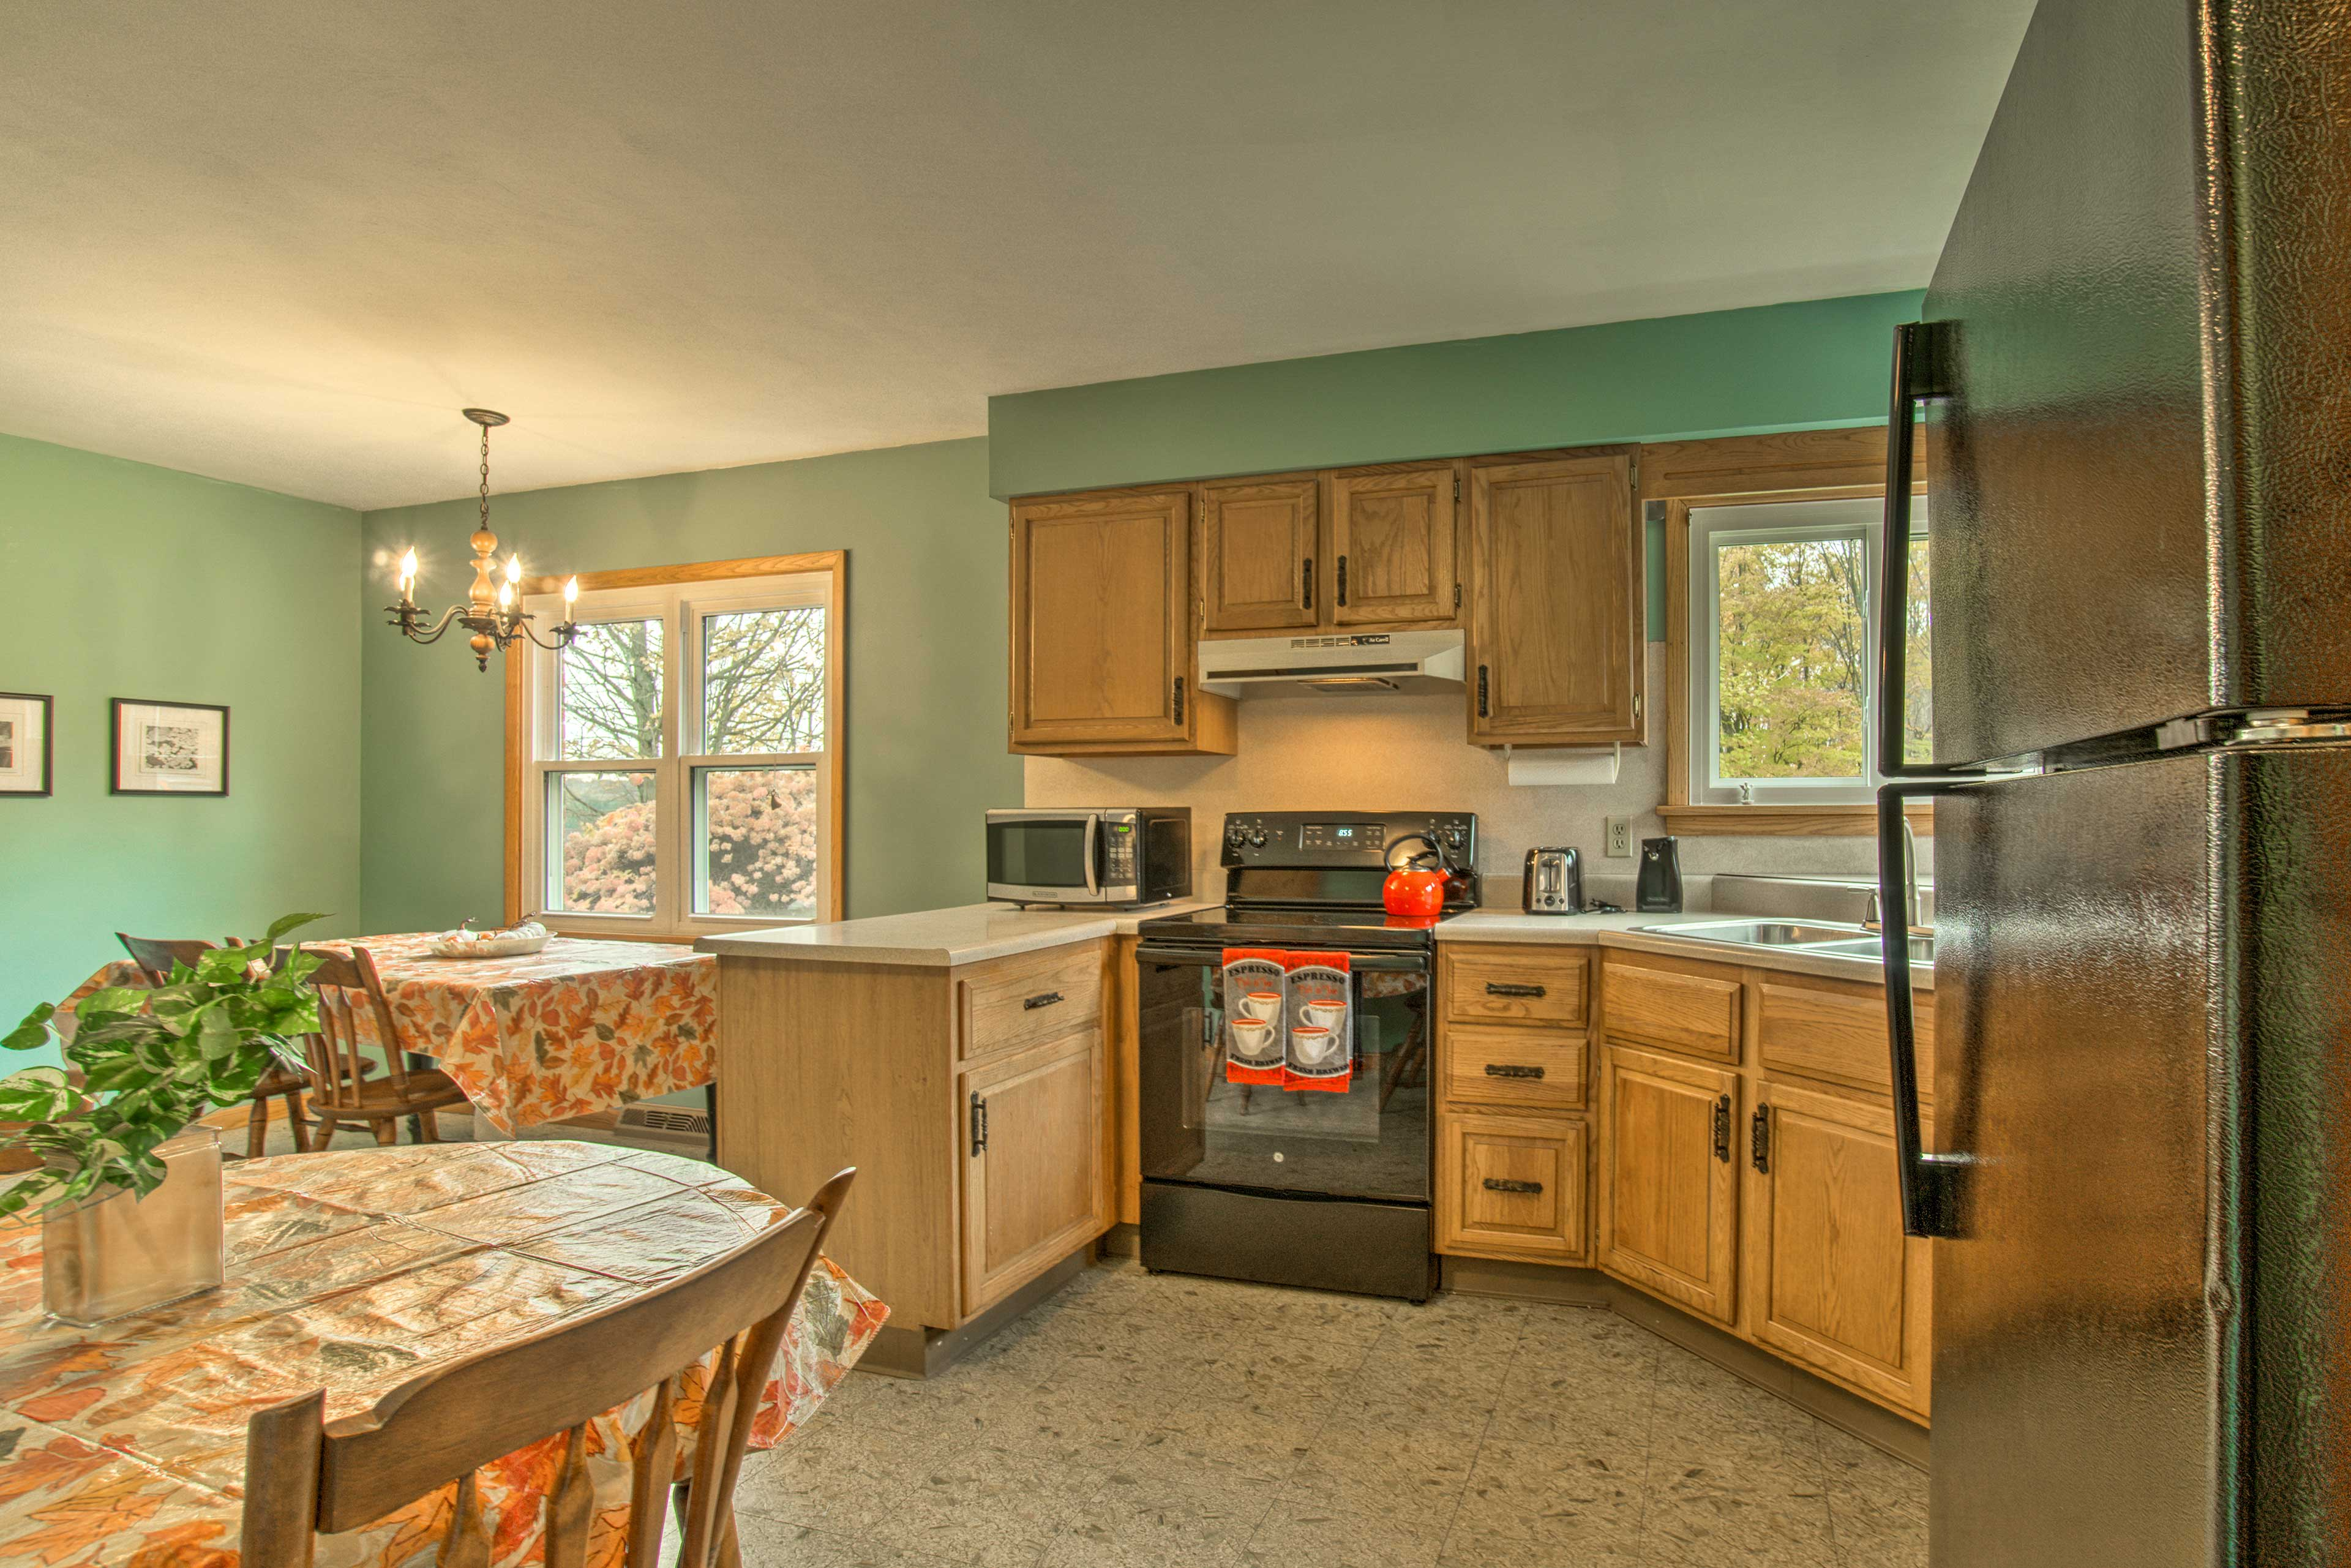 Inside, you'll find a fully equipped kitchen ready to handle all of your needs!